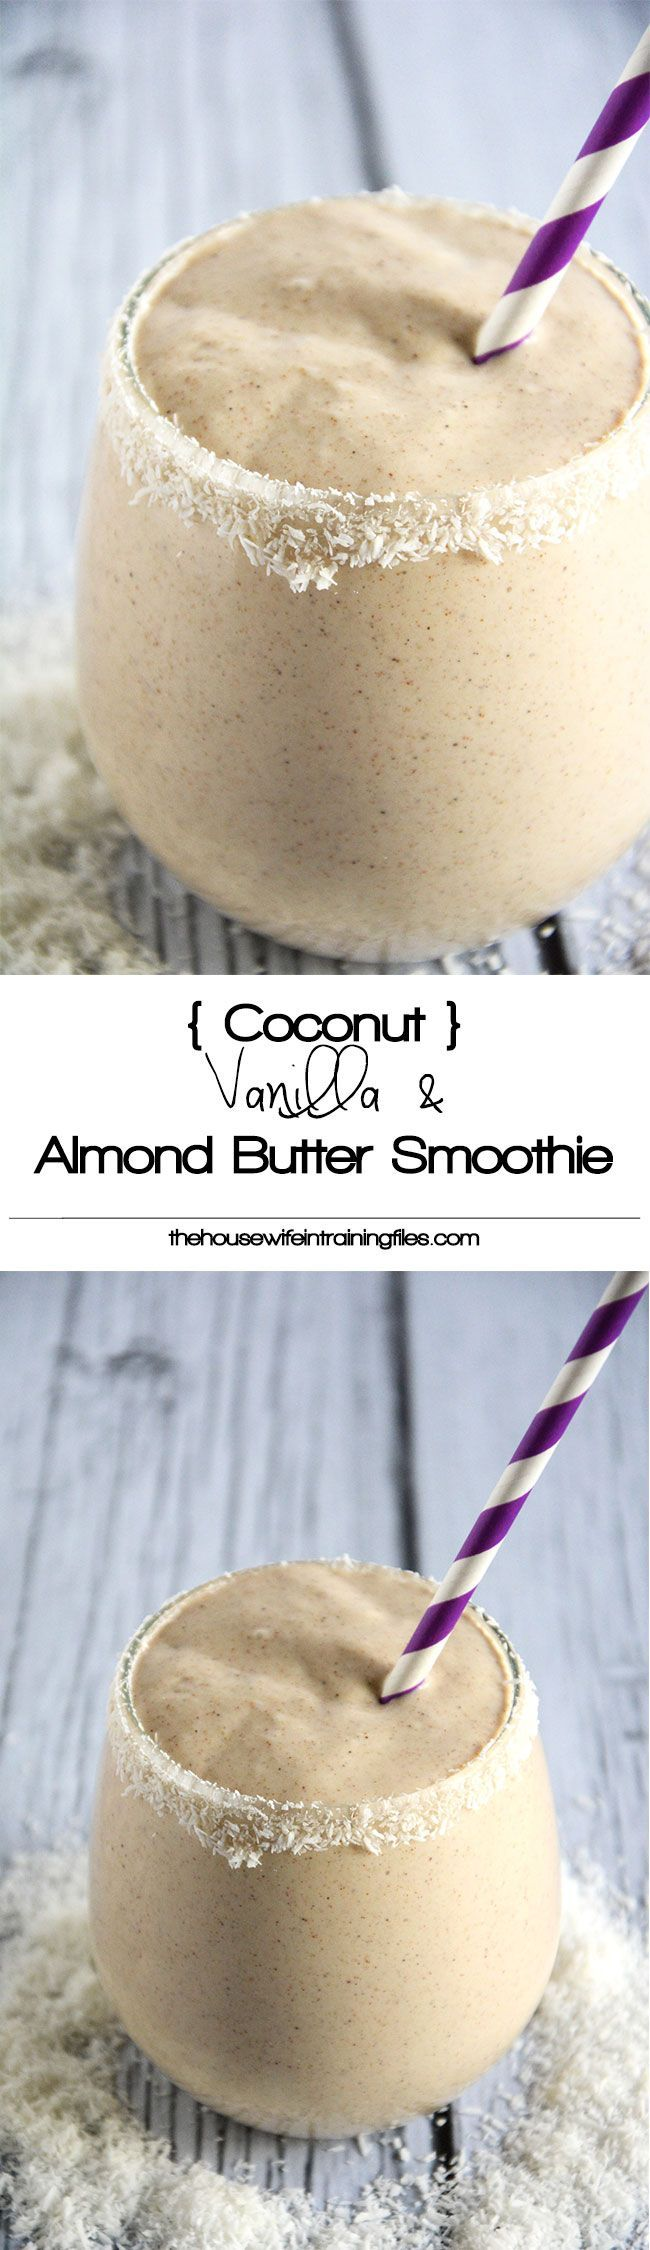 A velvety smoothie made with coconut milk, vanilla, almond butter and sweetened with dates! #smoothie #almondbutter #paleo: